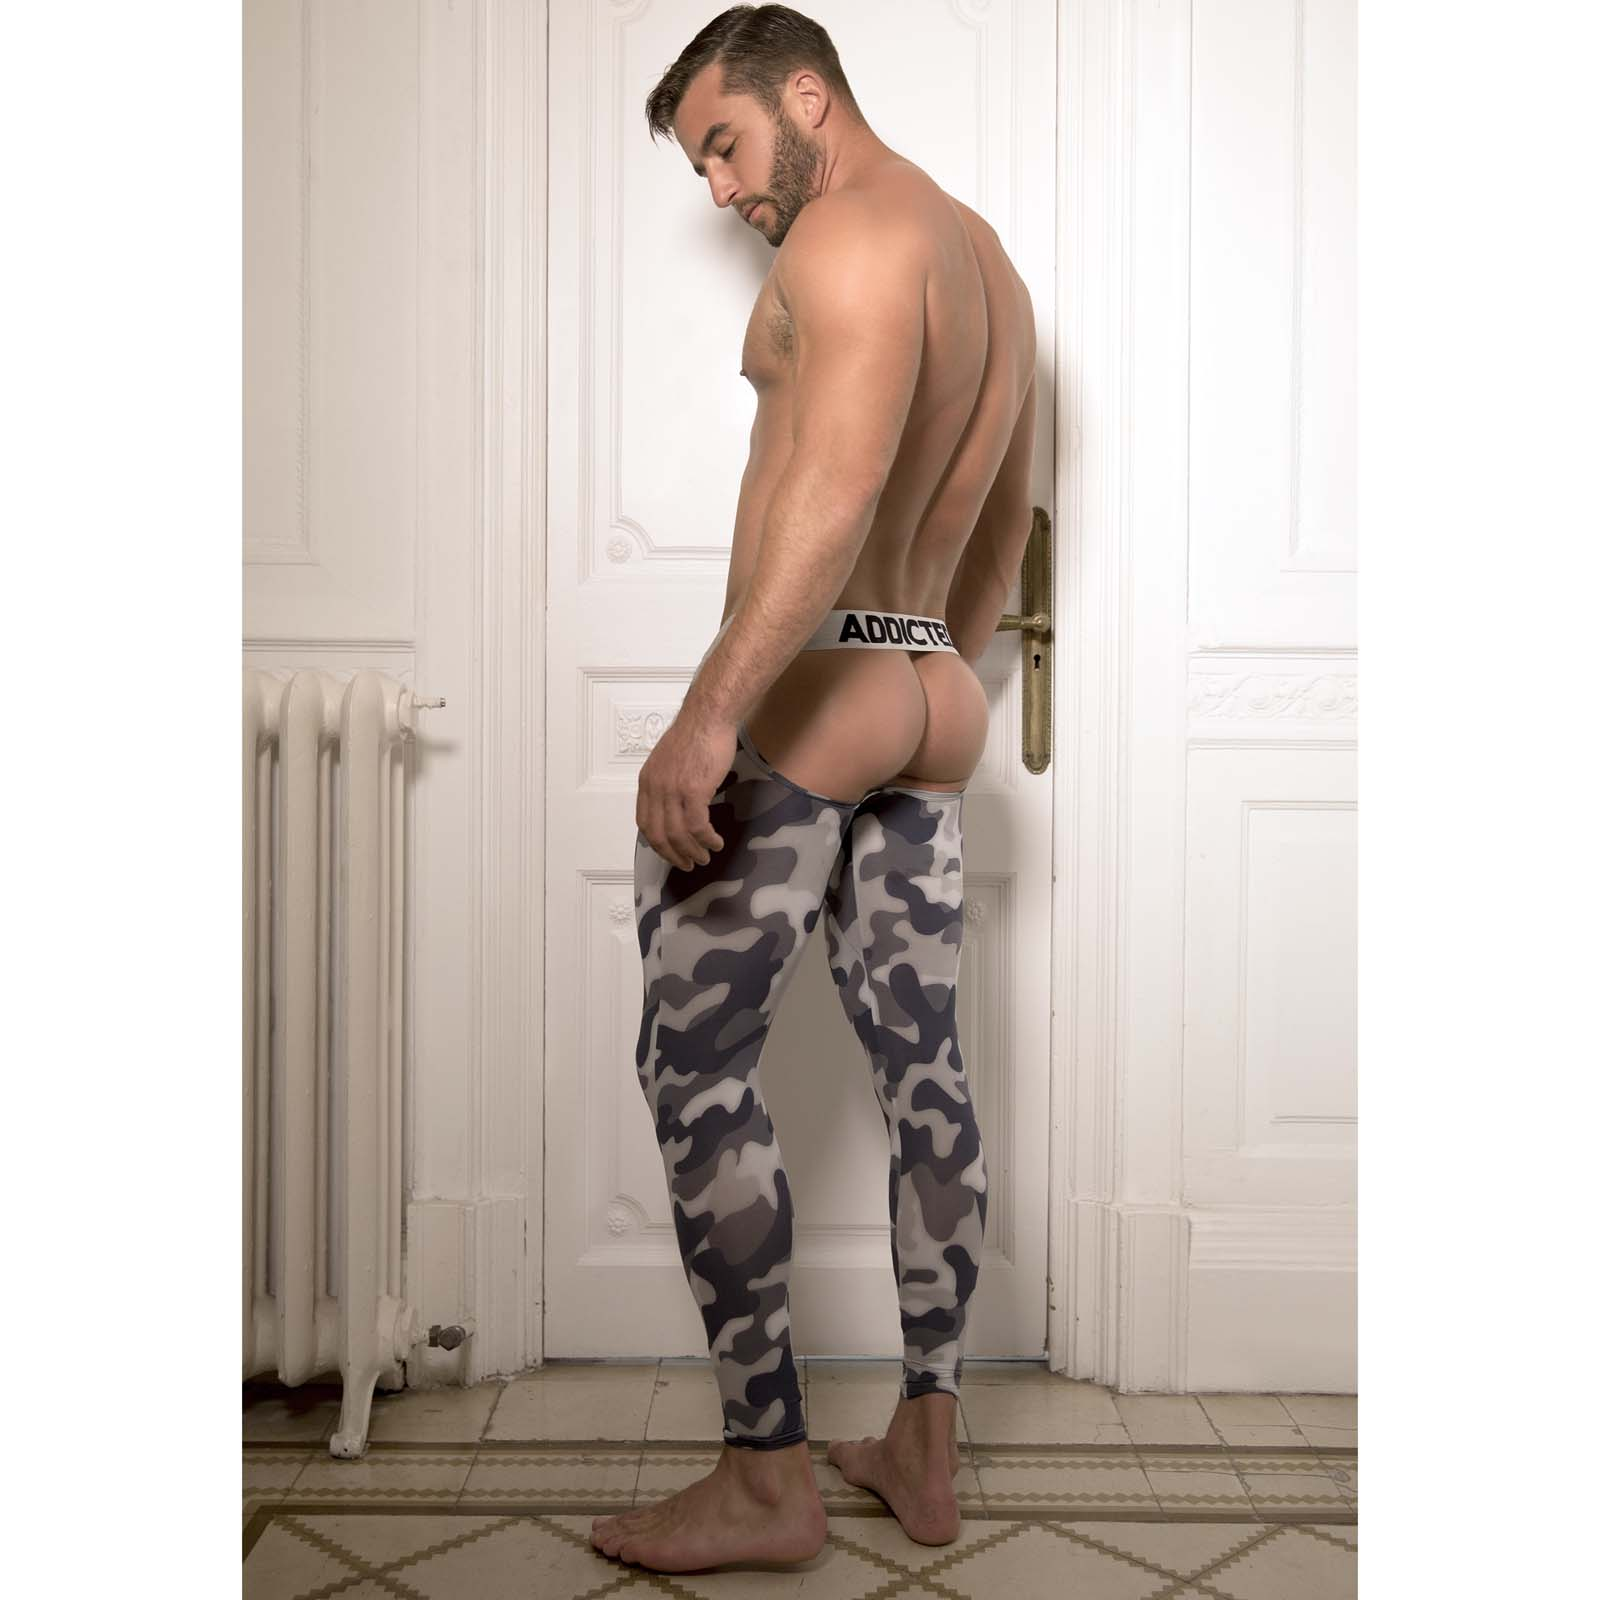 Legging empty bottom Addicted Camo AD695